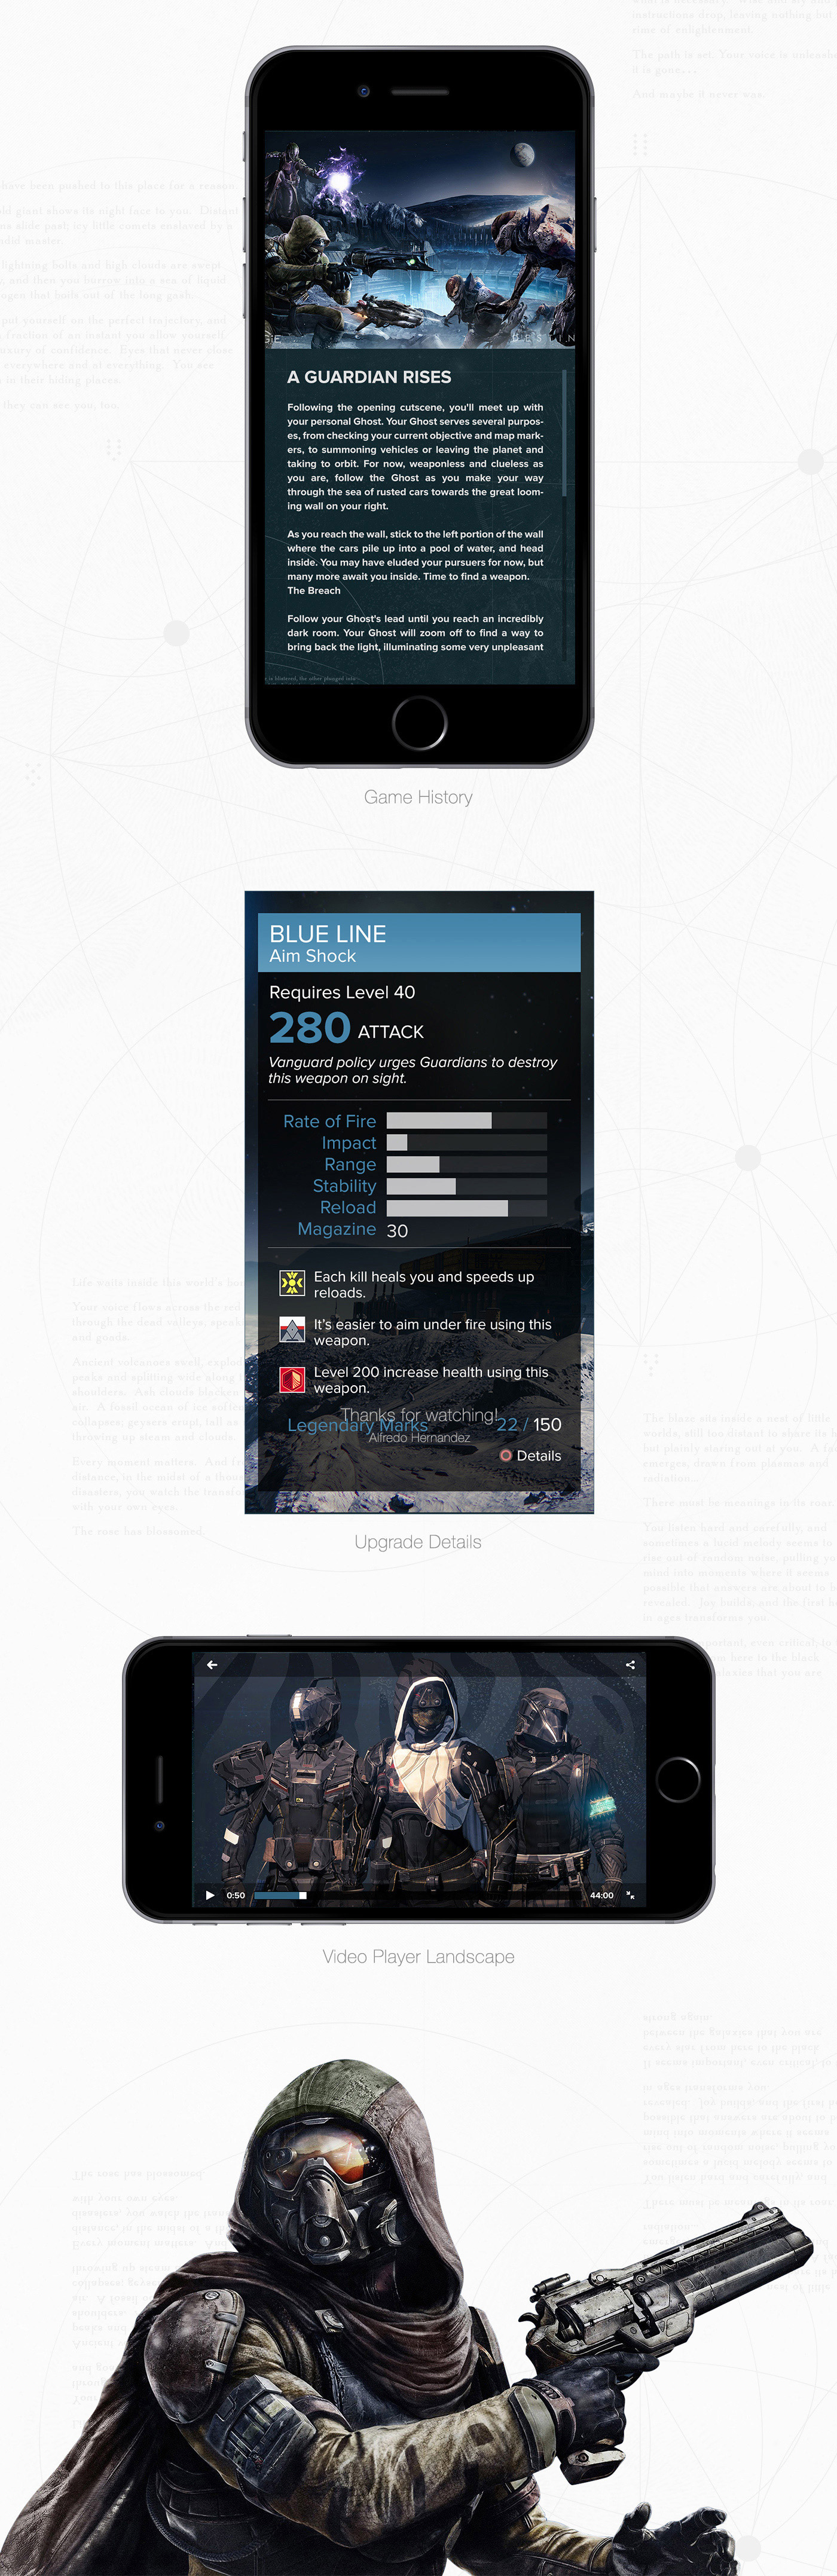 Destiny Companion App UI Design by AlfredoCreates.com